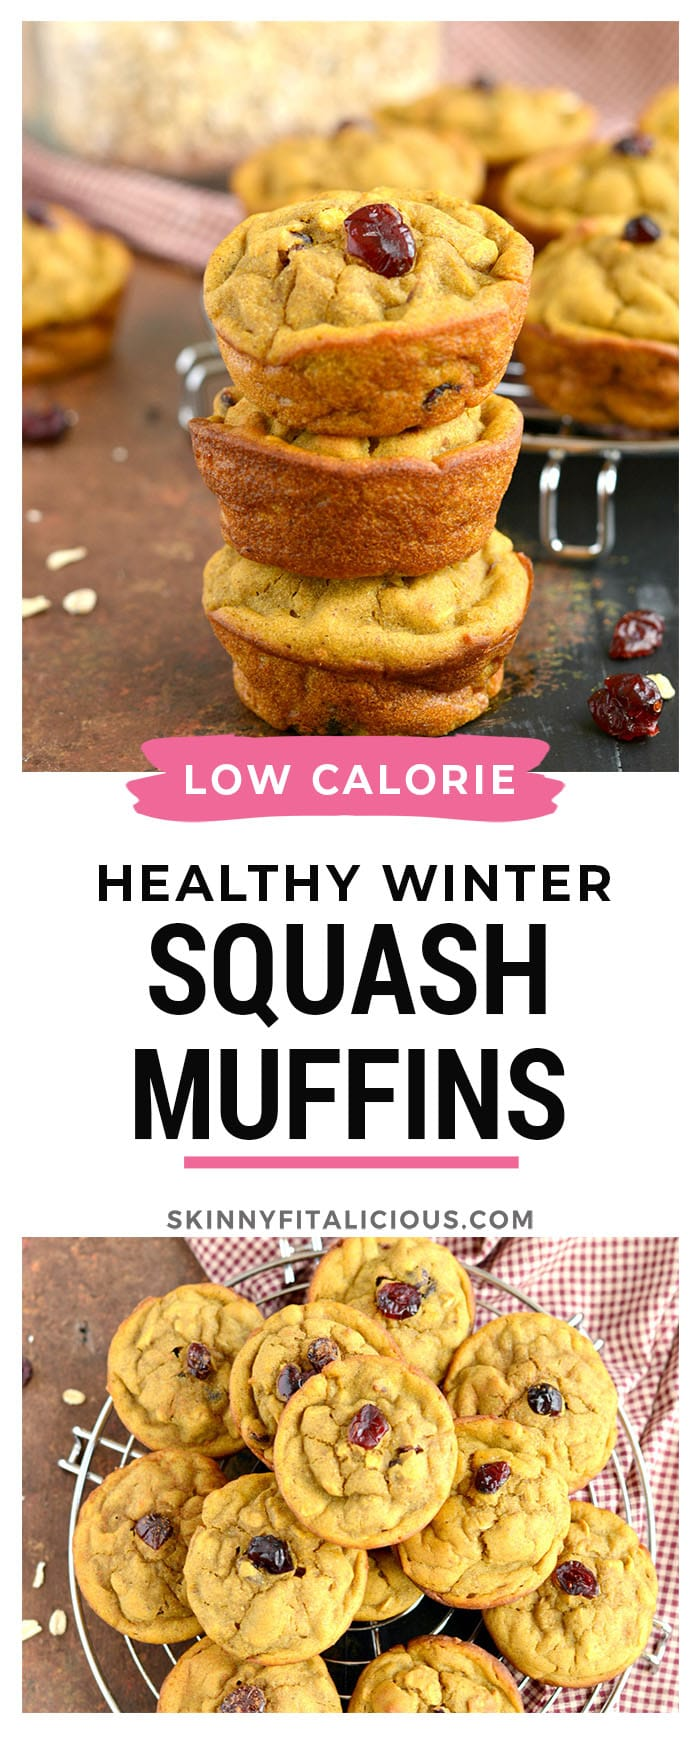 Winter Squash Muffins made low calorie with butternut squash. These gluten and dairy free muffins are a perfect snack on a cold day!